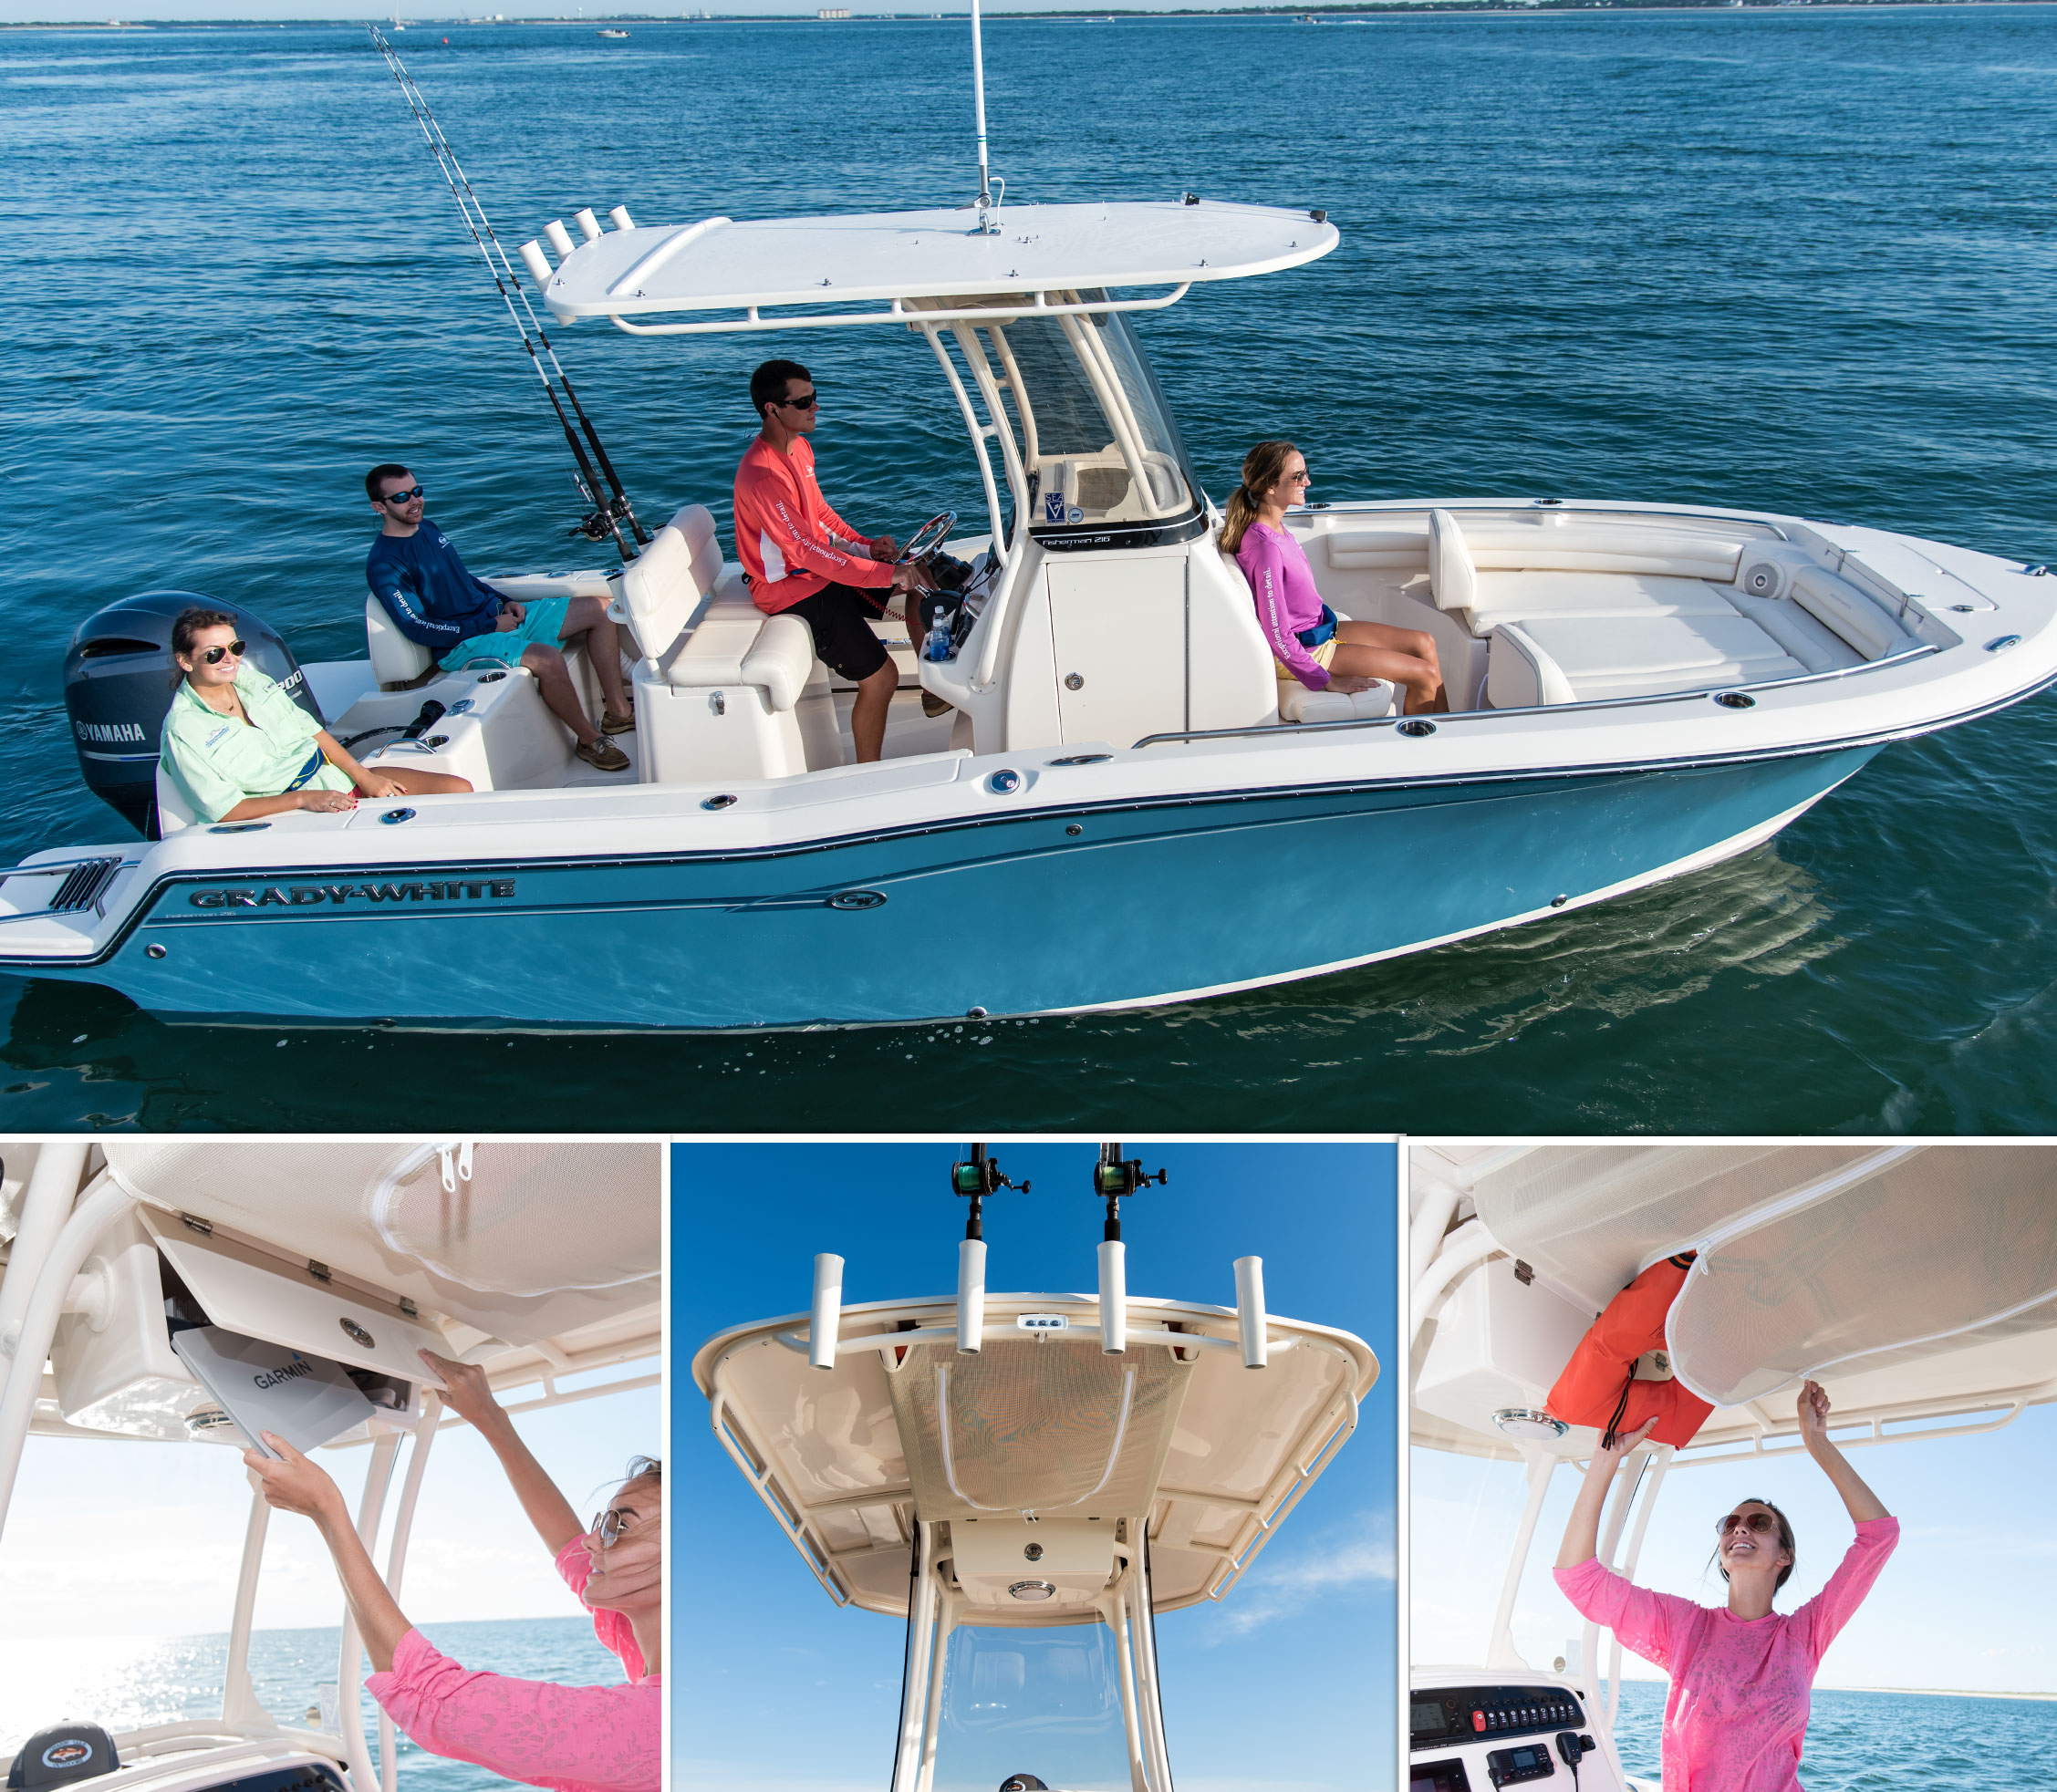 The Fisherman 216's optional T-top with radio box, storage net, rod holders and more.